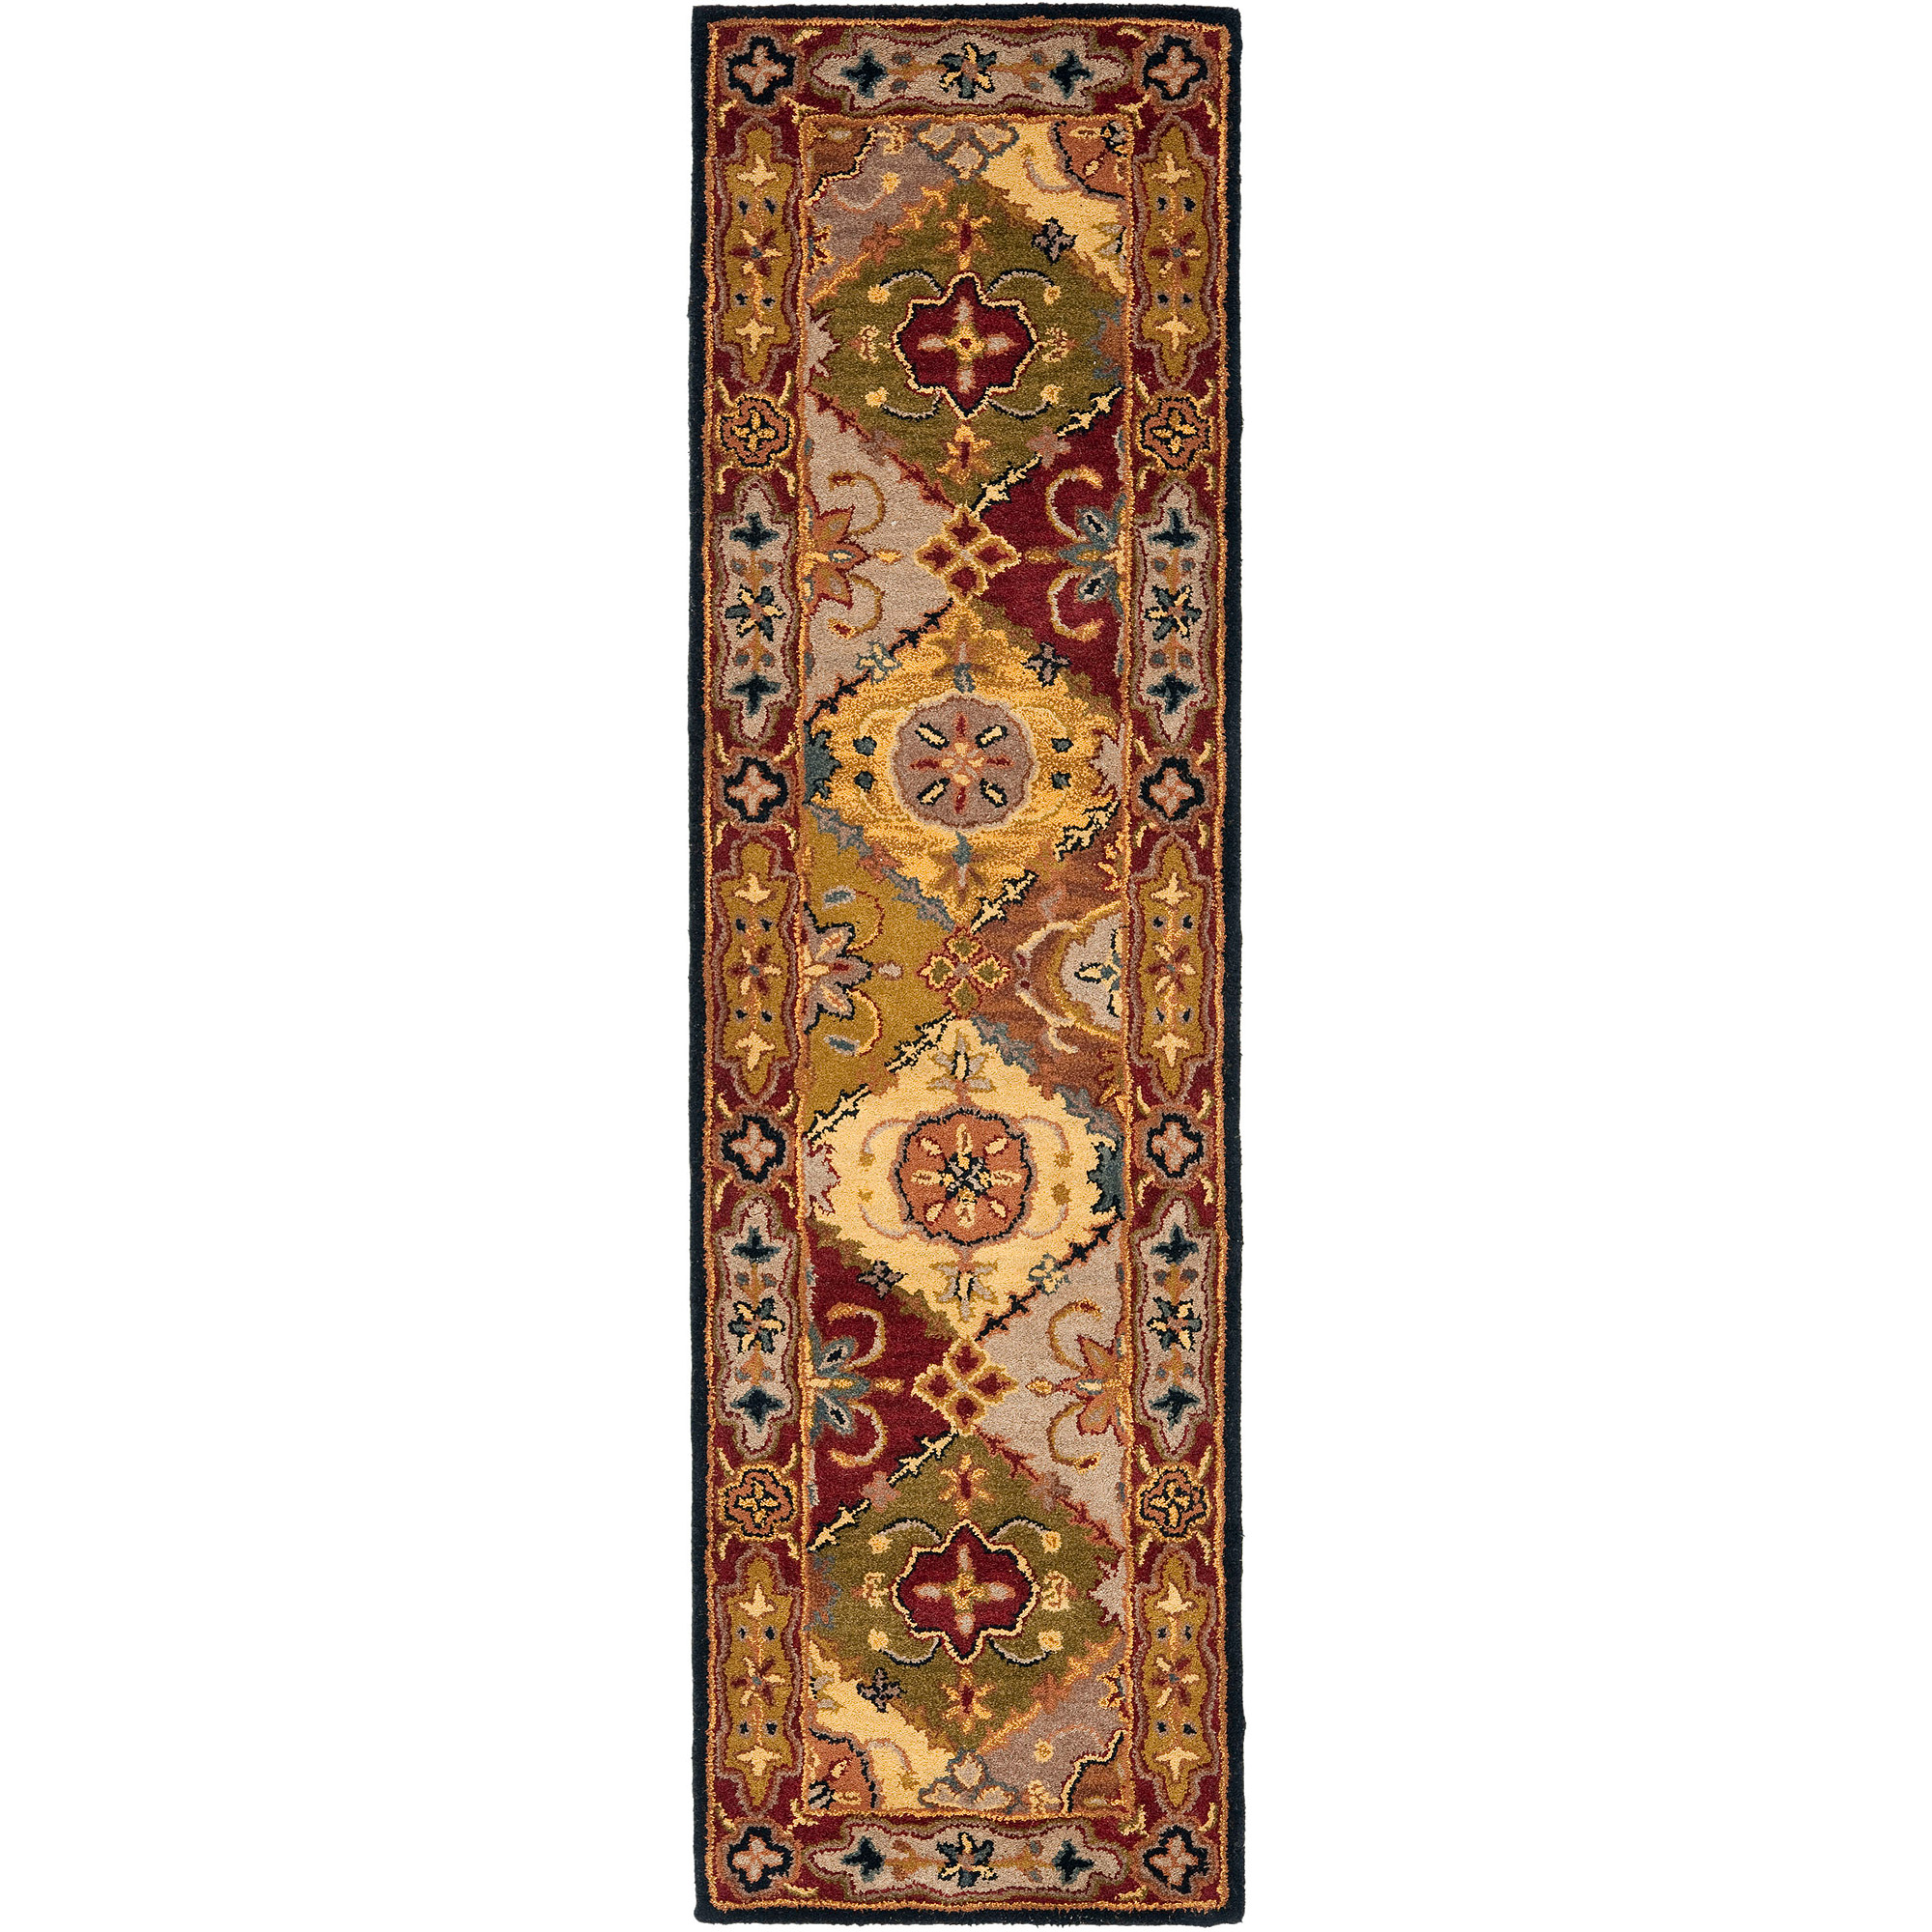 Safavieh Heritage Regius Traditional Area Rug or Runner